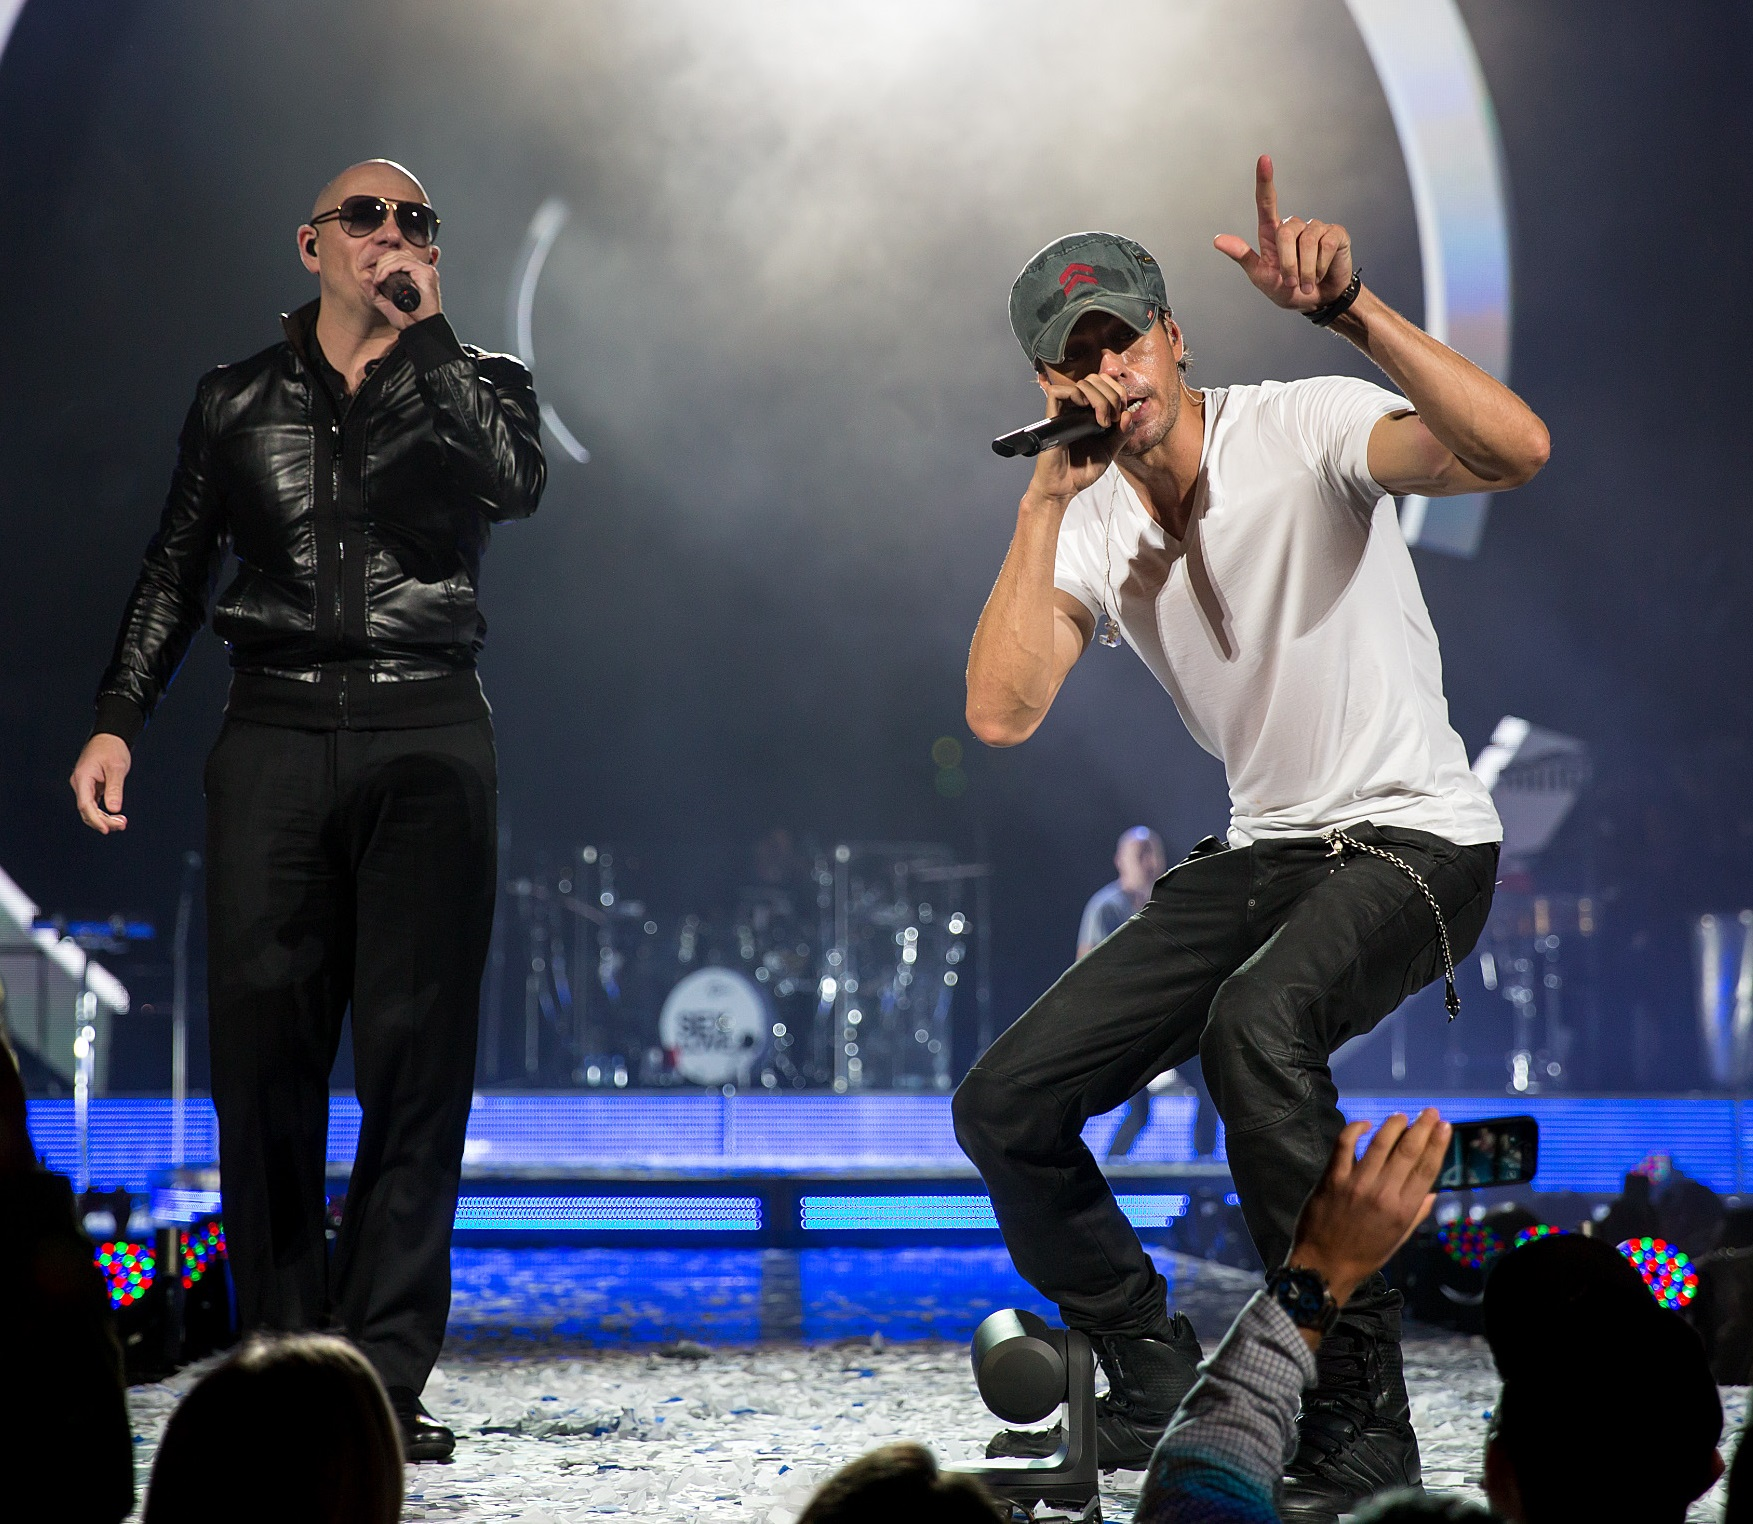 WATCH HERE: New Music Video From Enrique Iglesias ft Pitbull 'Move To Miami'